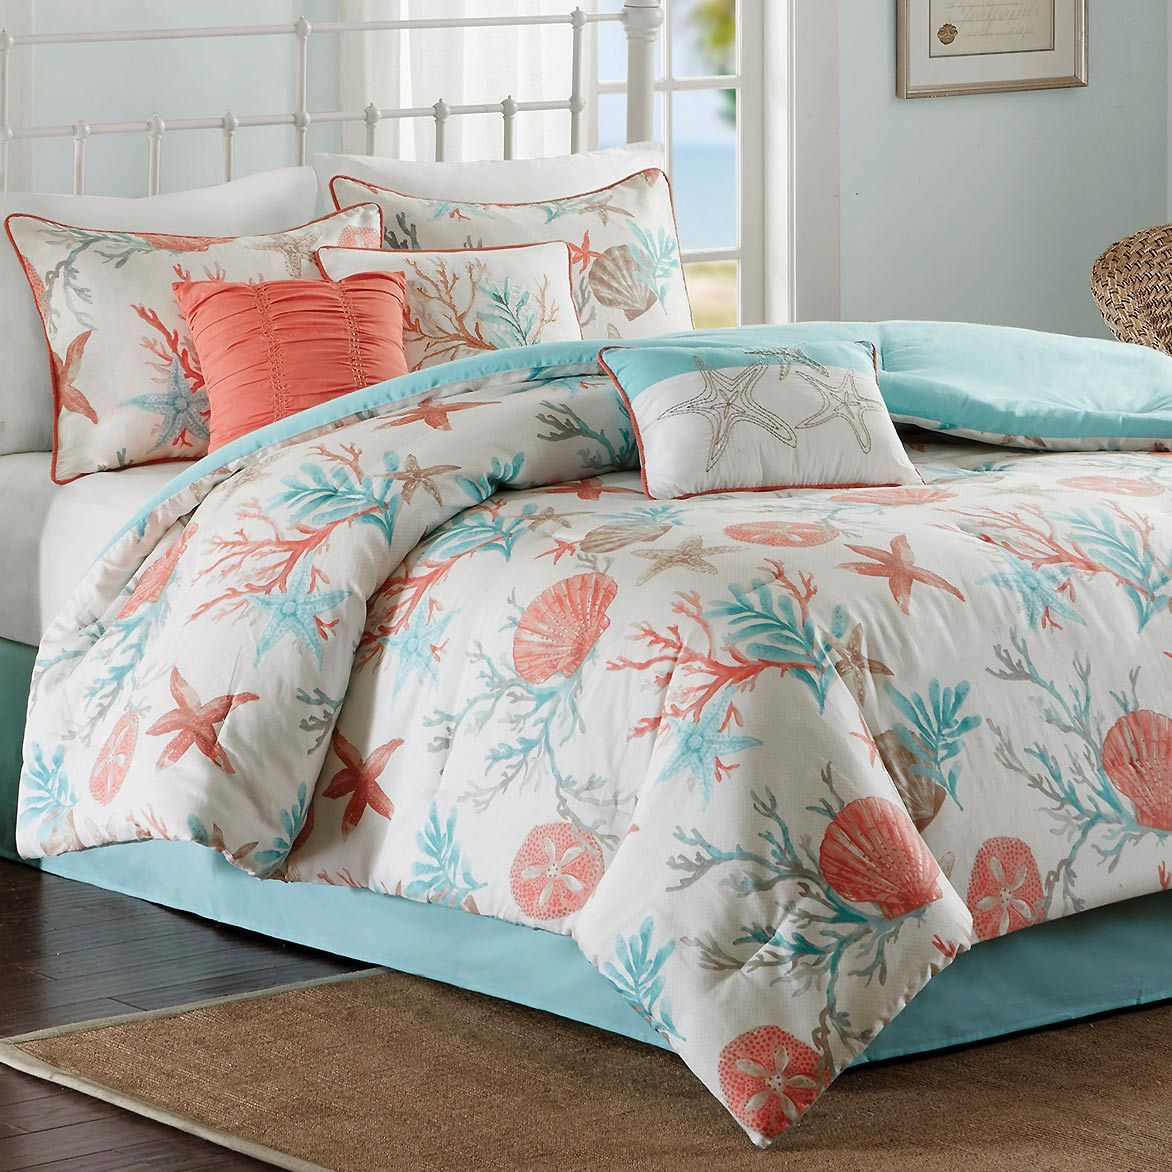 Beach Comforter Sets Queen Size Coral Amp Aqua Reef Comforter Set Bella Coastal Decor